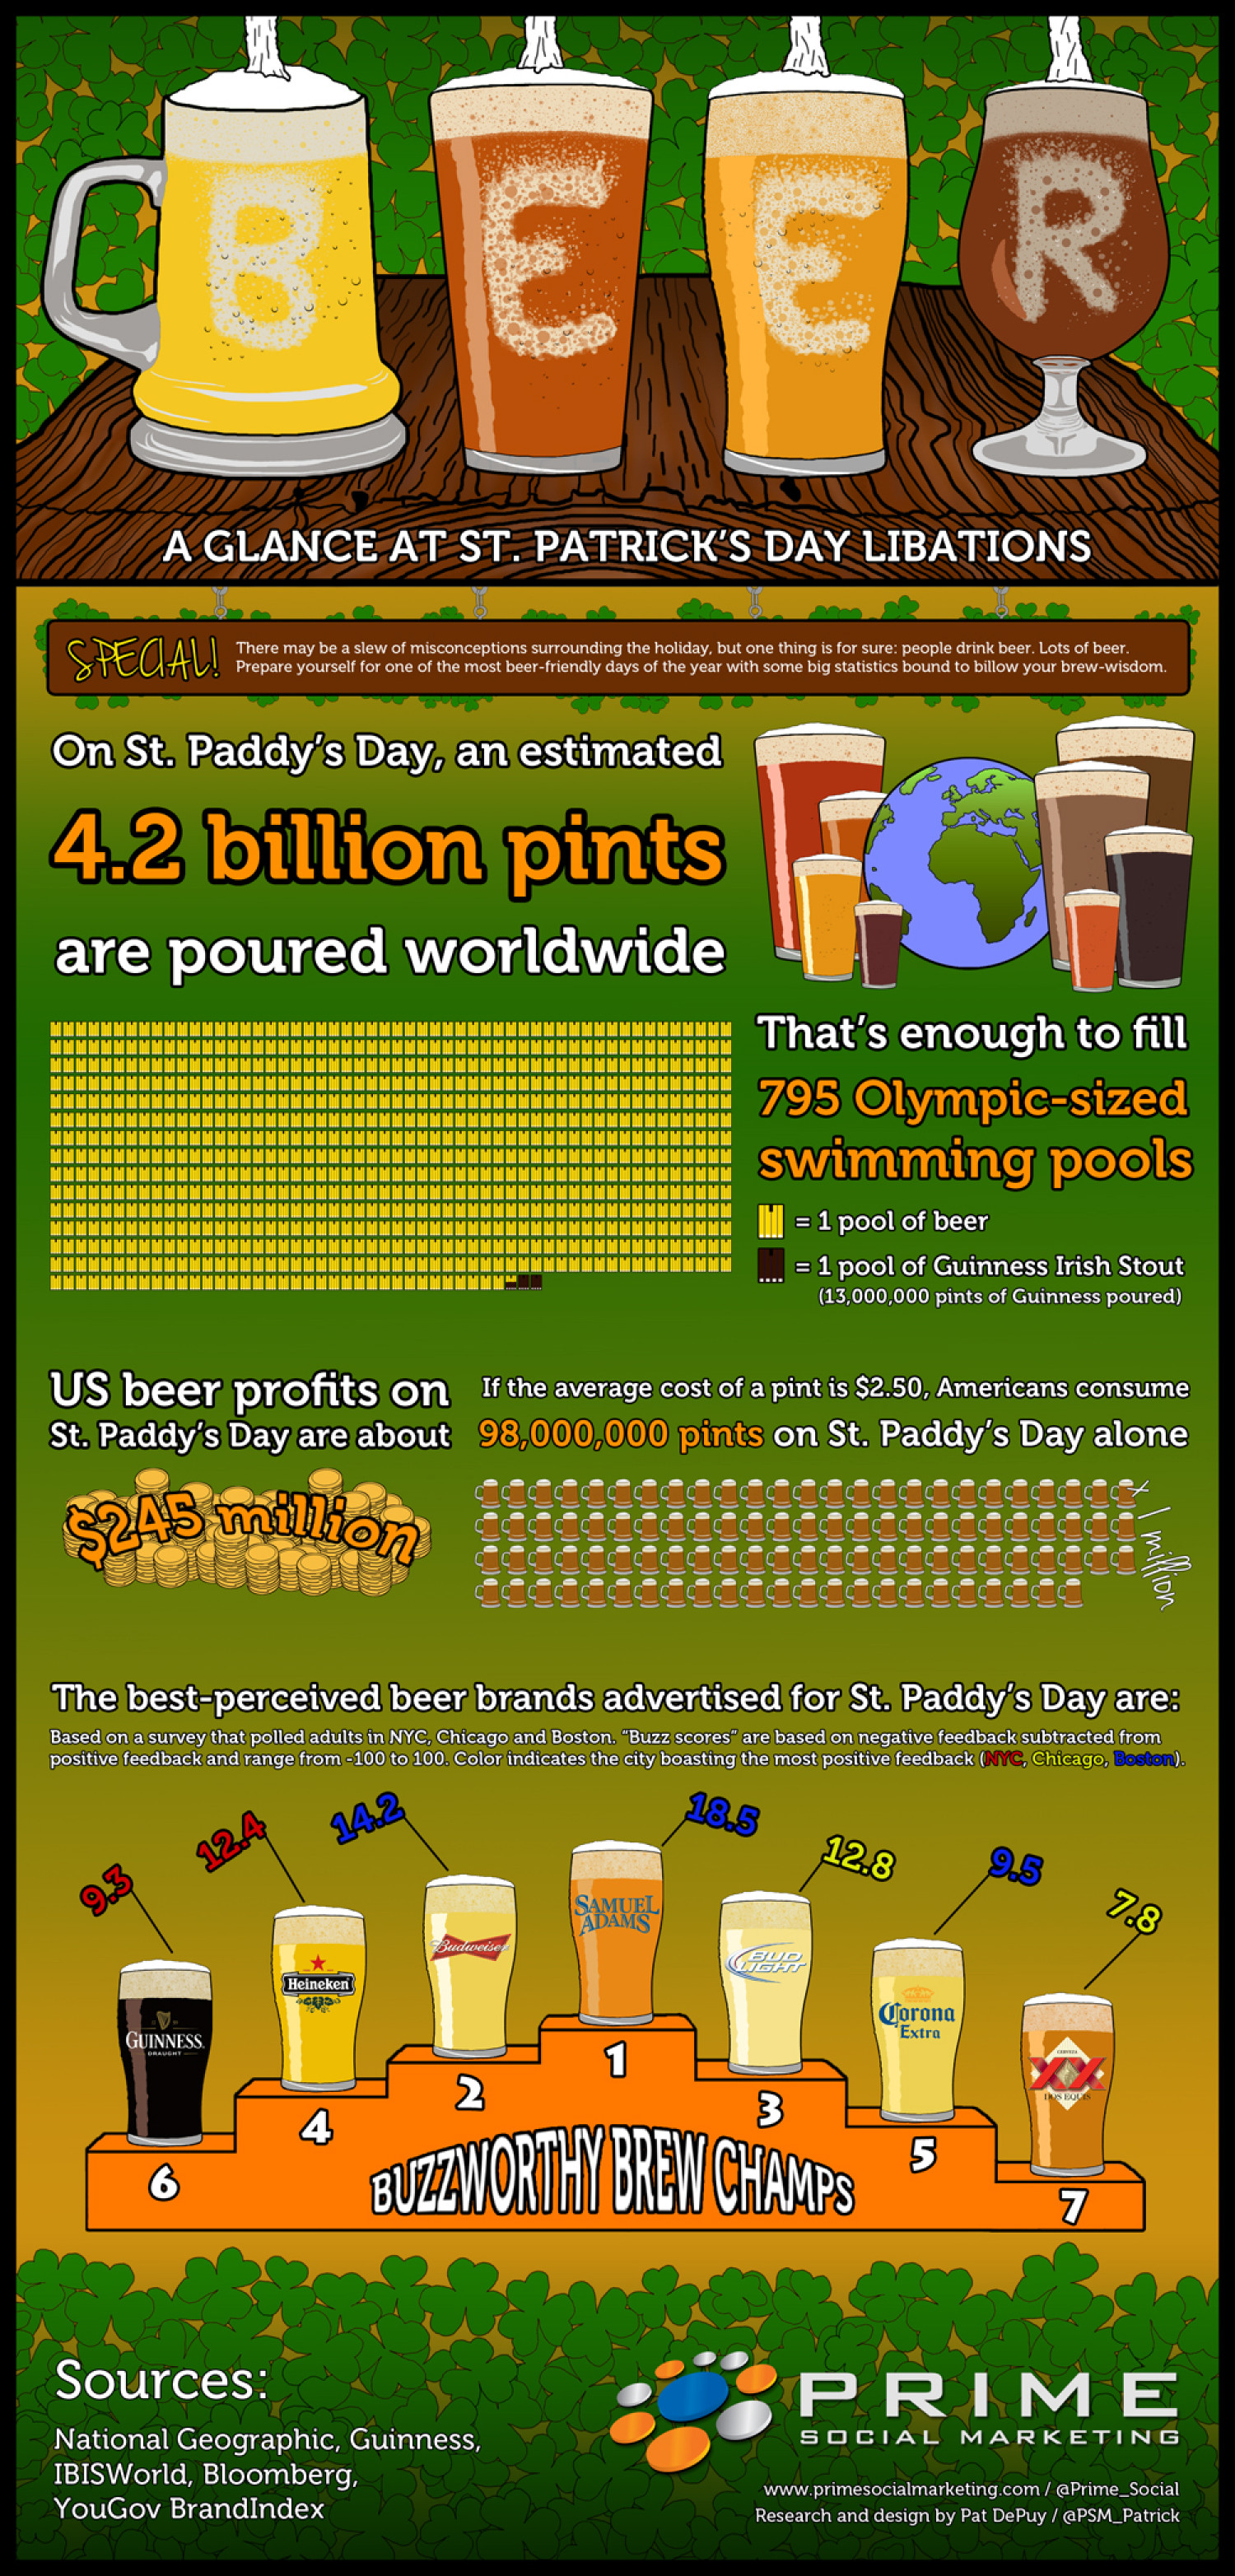 Beer: A glance at St. Patrick's Day libations Infographic